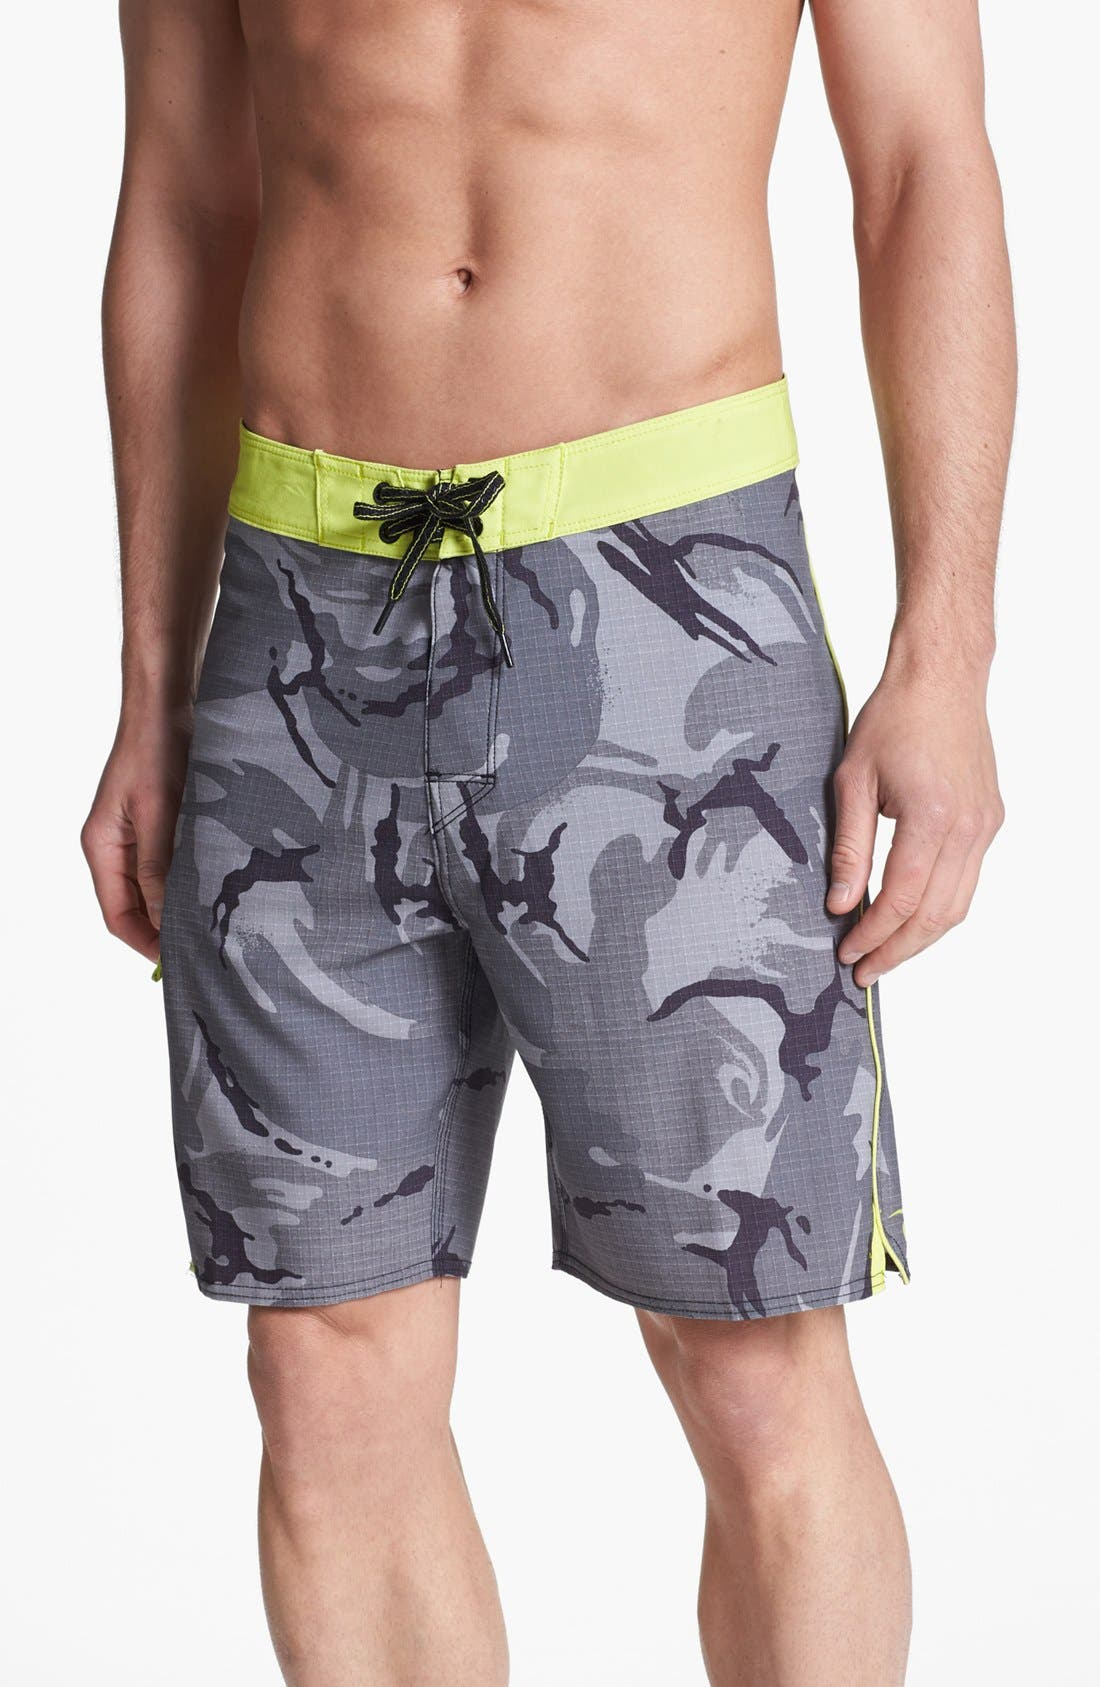 Alternate Image 1 Selected - Rip Curl 'Mirage Aggroflage' Board Shorts